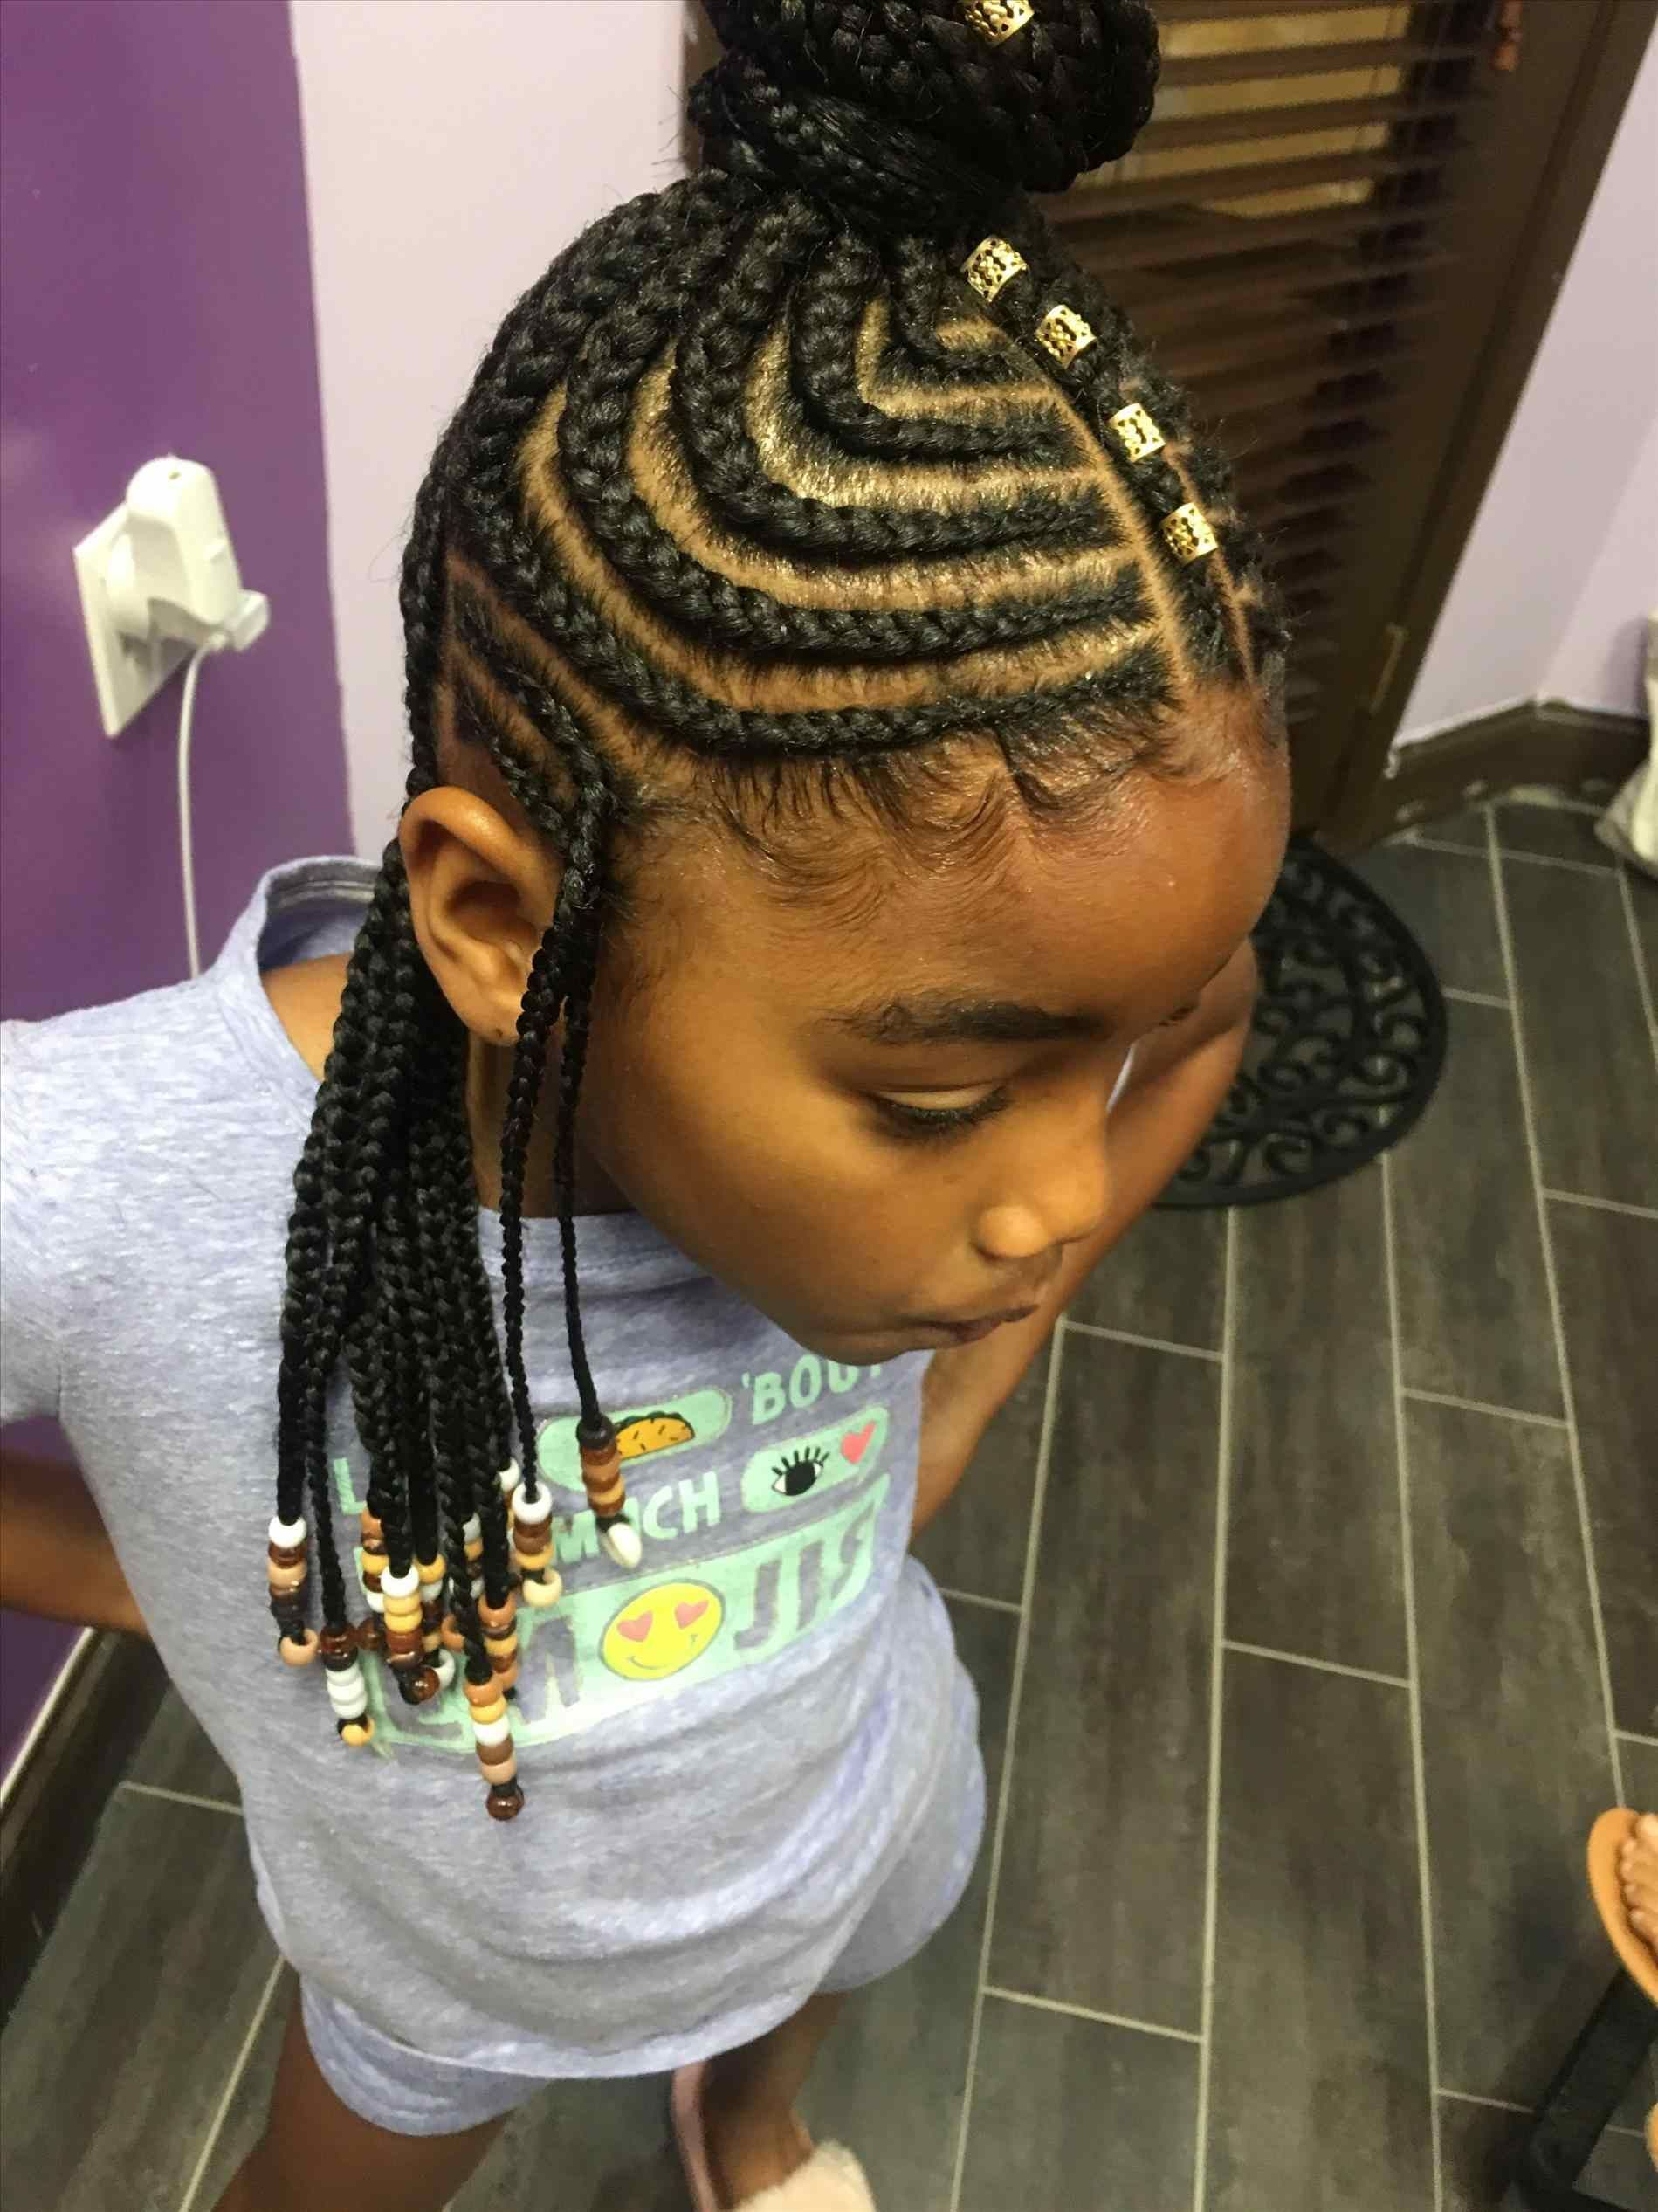 Hairstyles Braids For Kids With Beads Strand Twists And Beads Childrenus Natural H Black Kids Braids Hairstyles Little Girl Braid Hairstyles Little Girl Braids